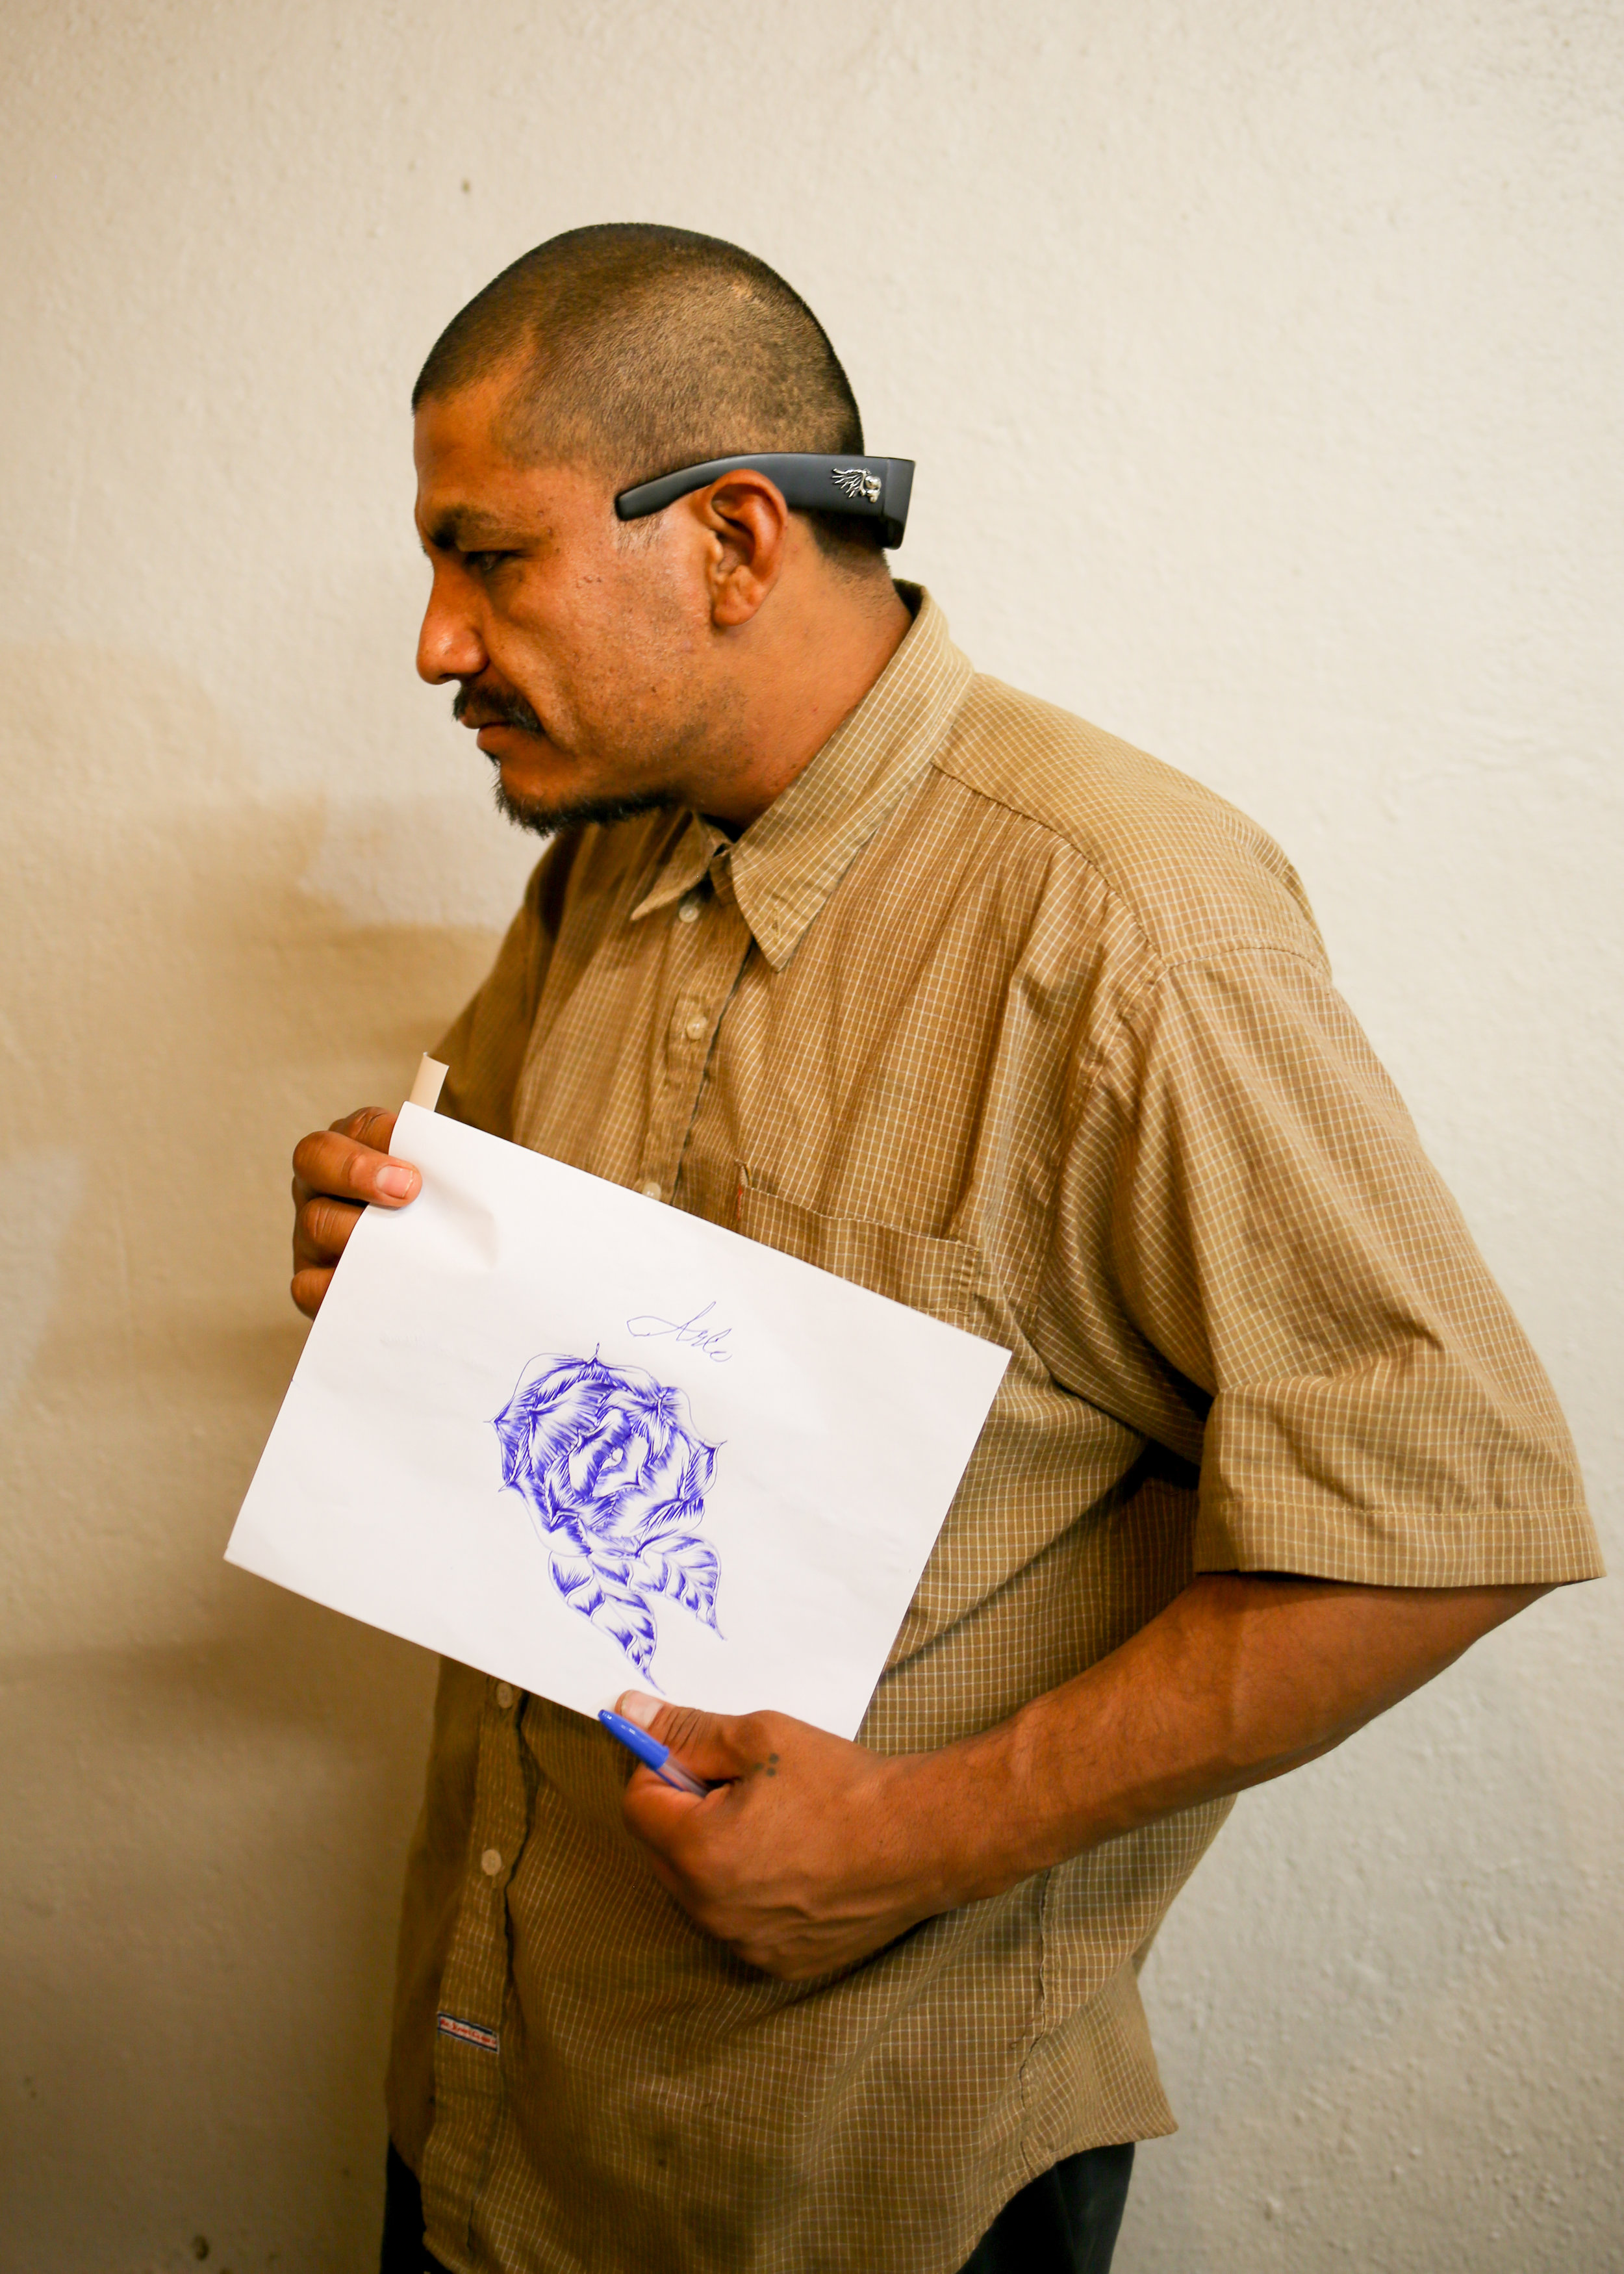 Migrant with his drawing of a rose, Tijuana, Mexico 2017